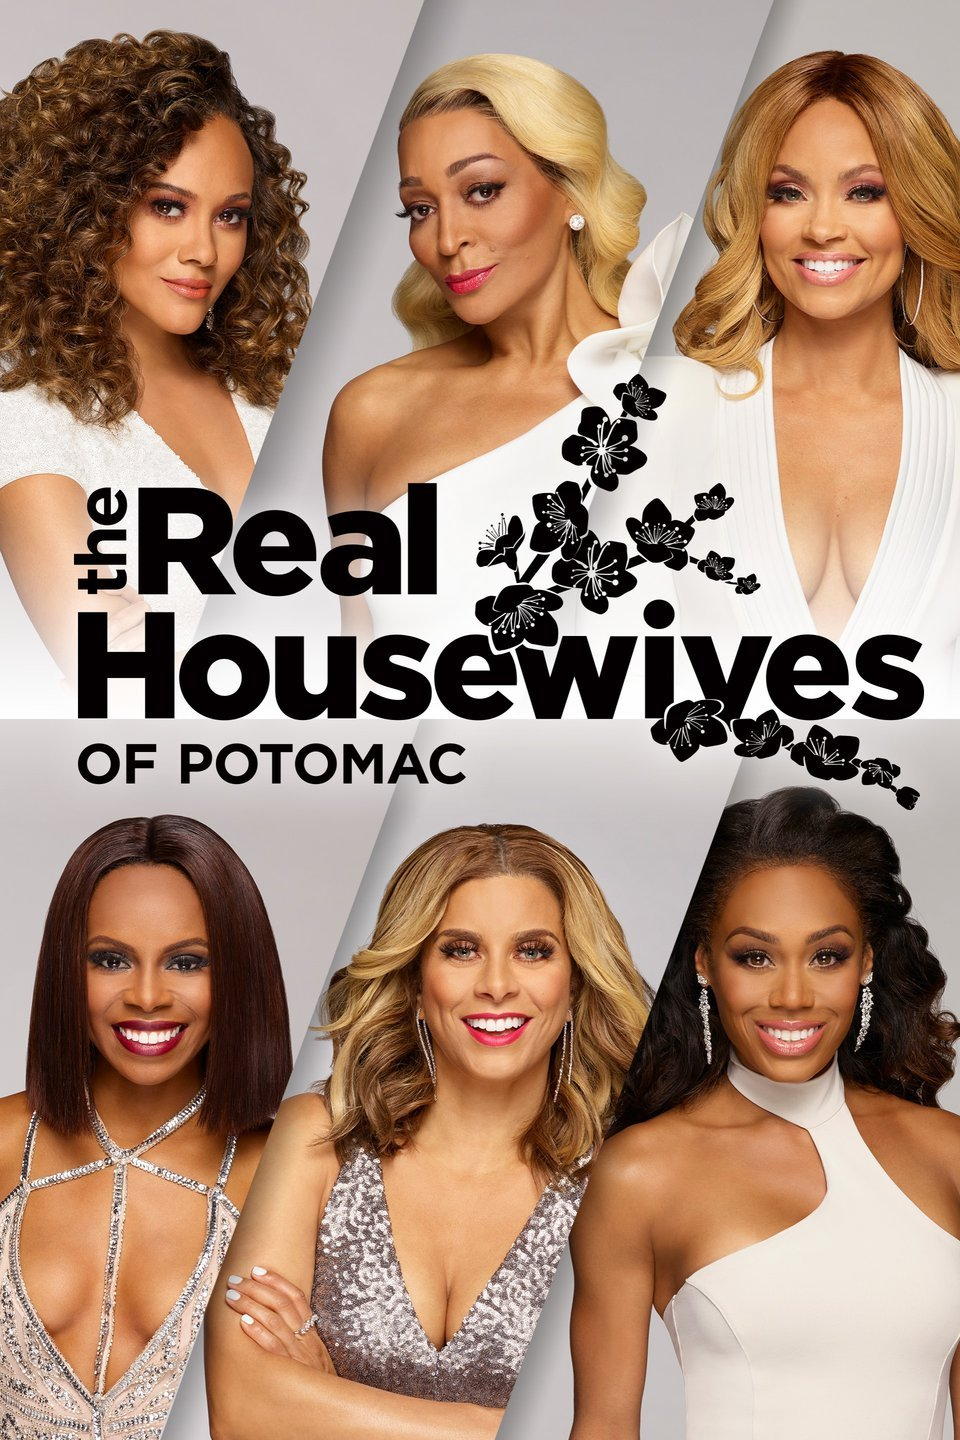 The Real Housewives of Potomac - Season 5 Episode 8 - Serving up Betrayals